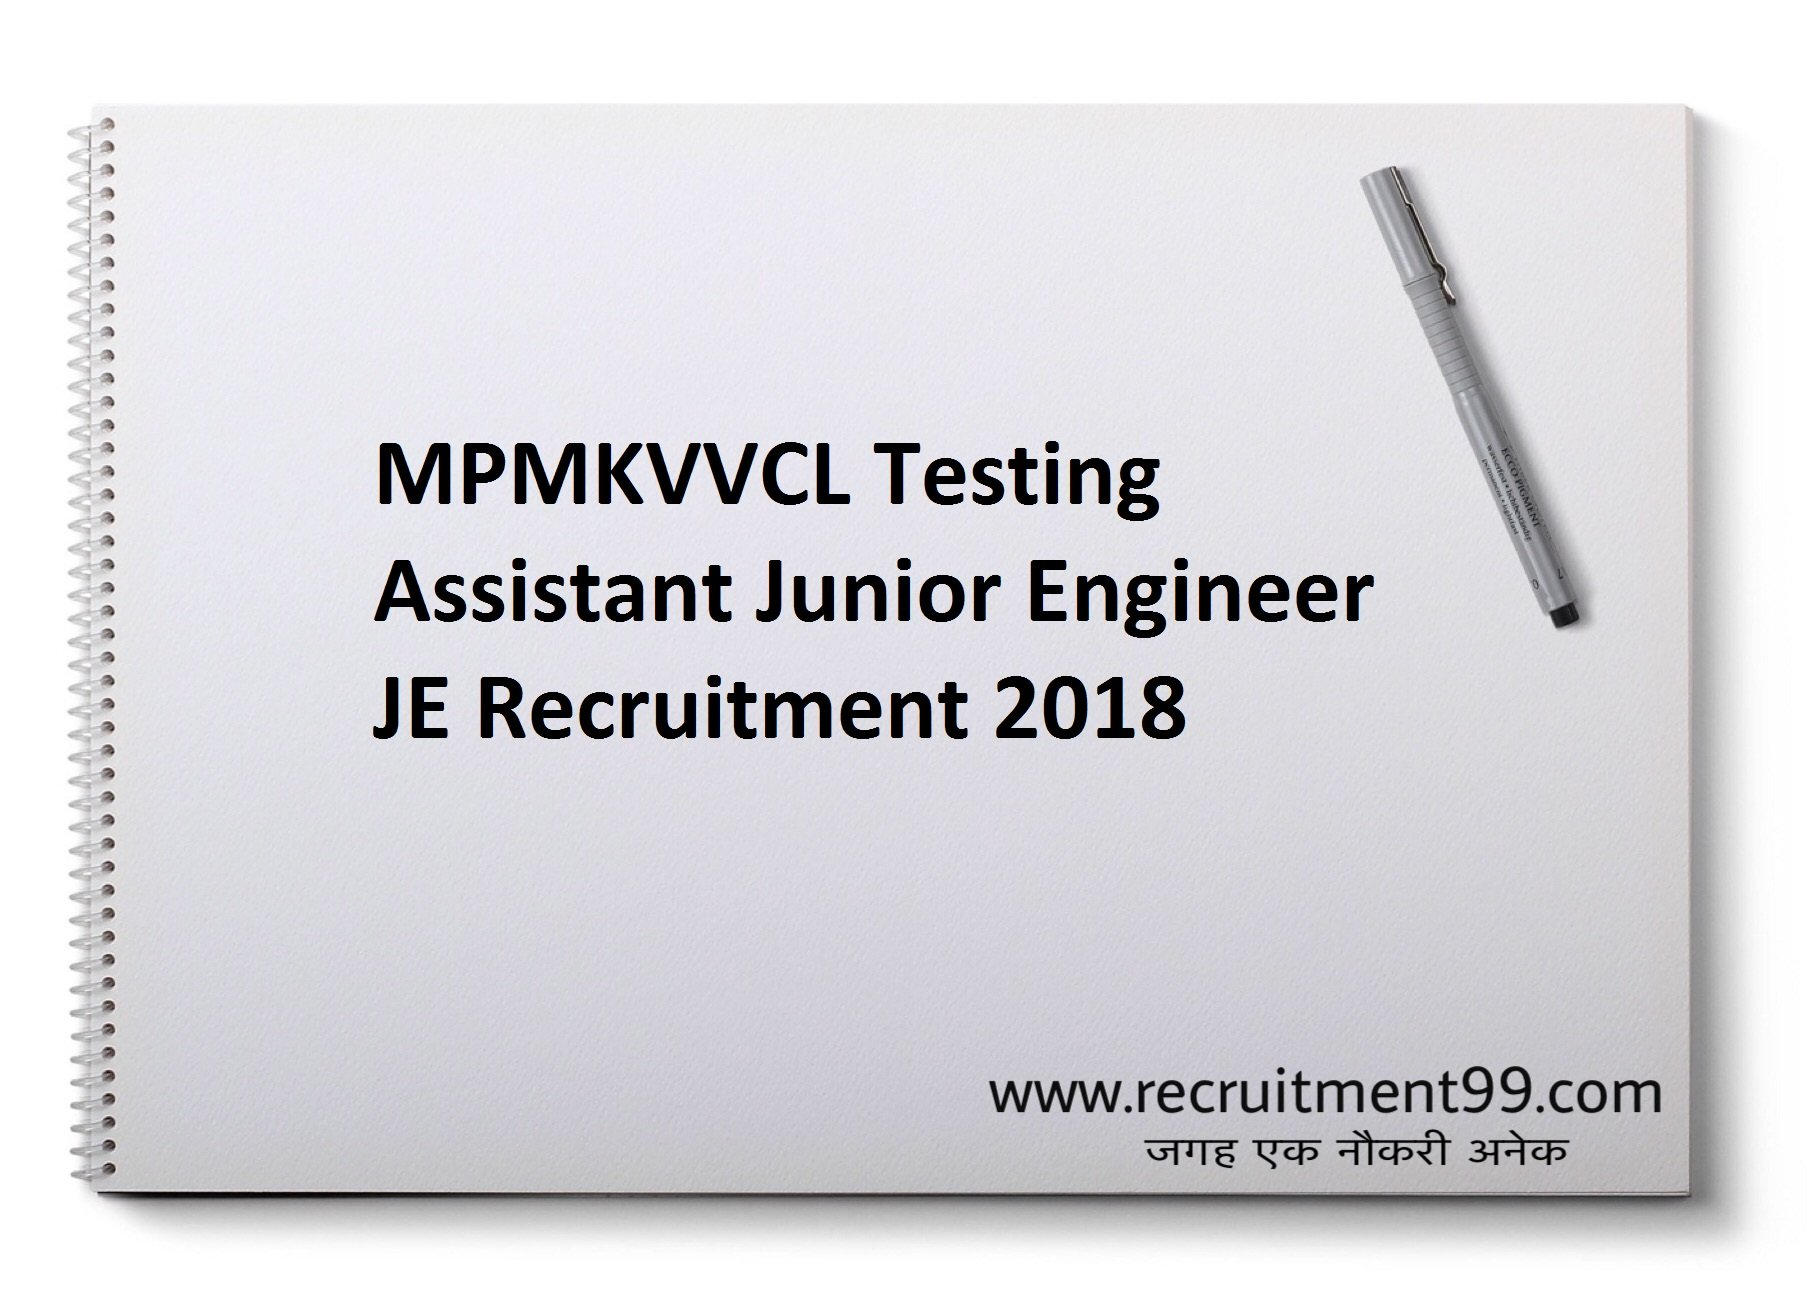 MPMKVVCL Testing Assistant Junior Engineer JE Recruitment Admit Card Result 2018